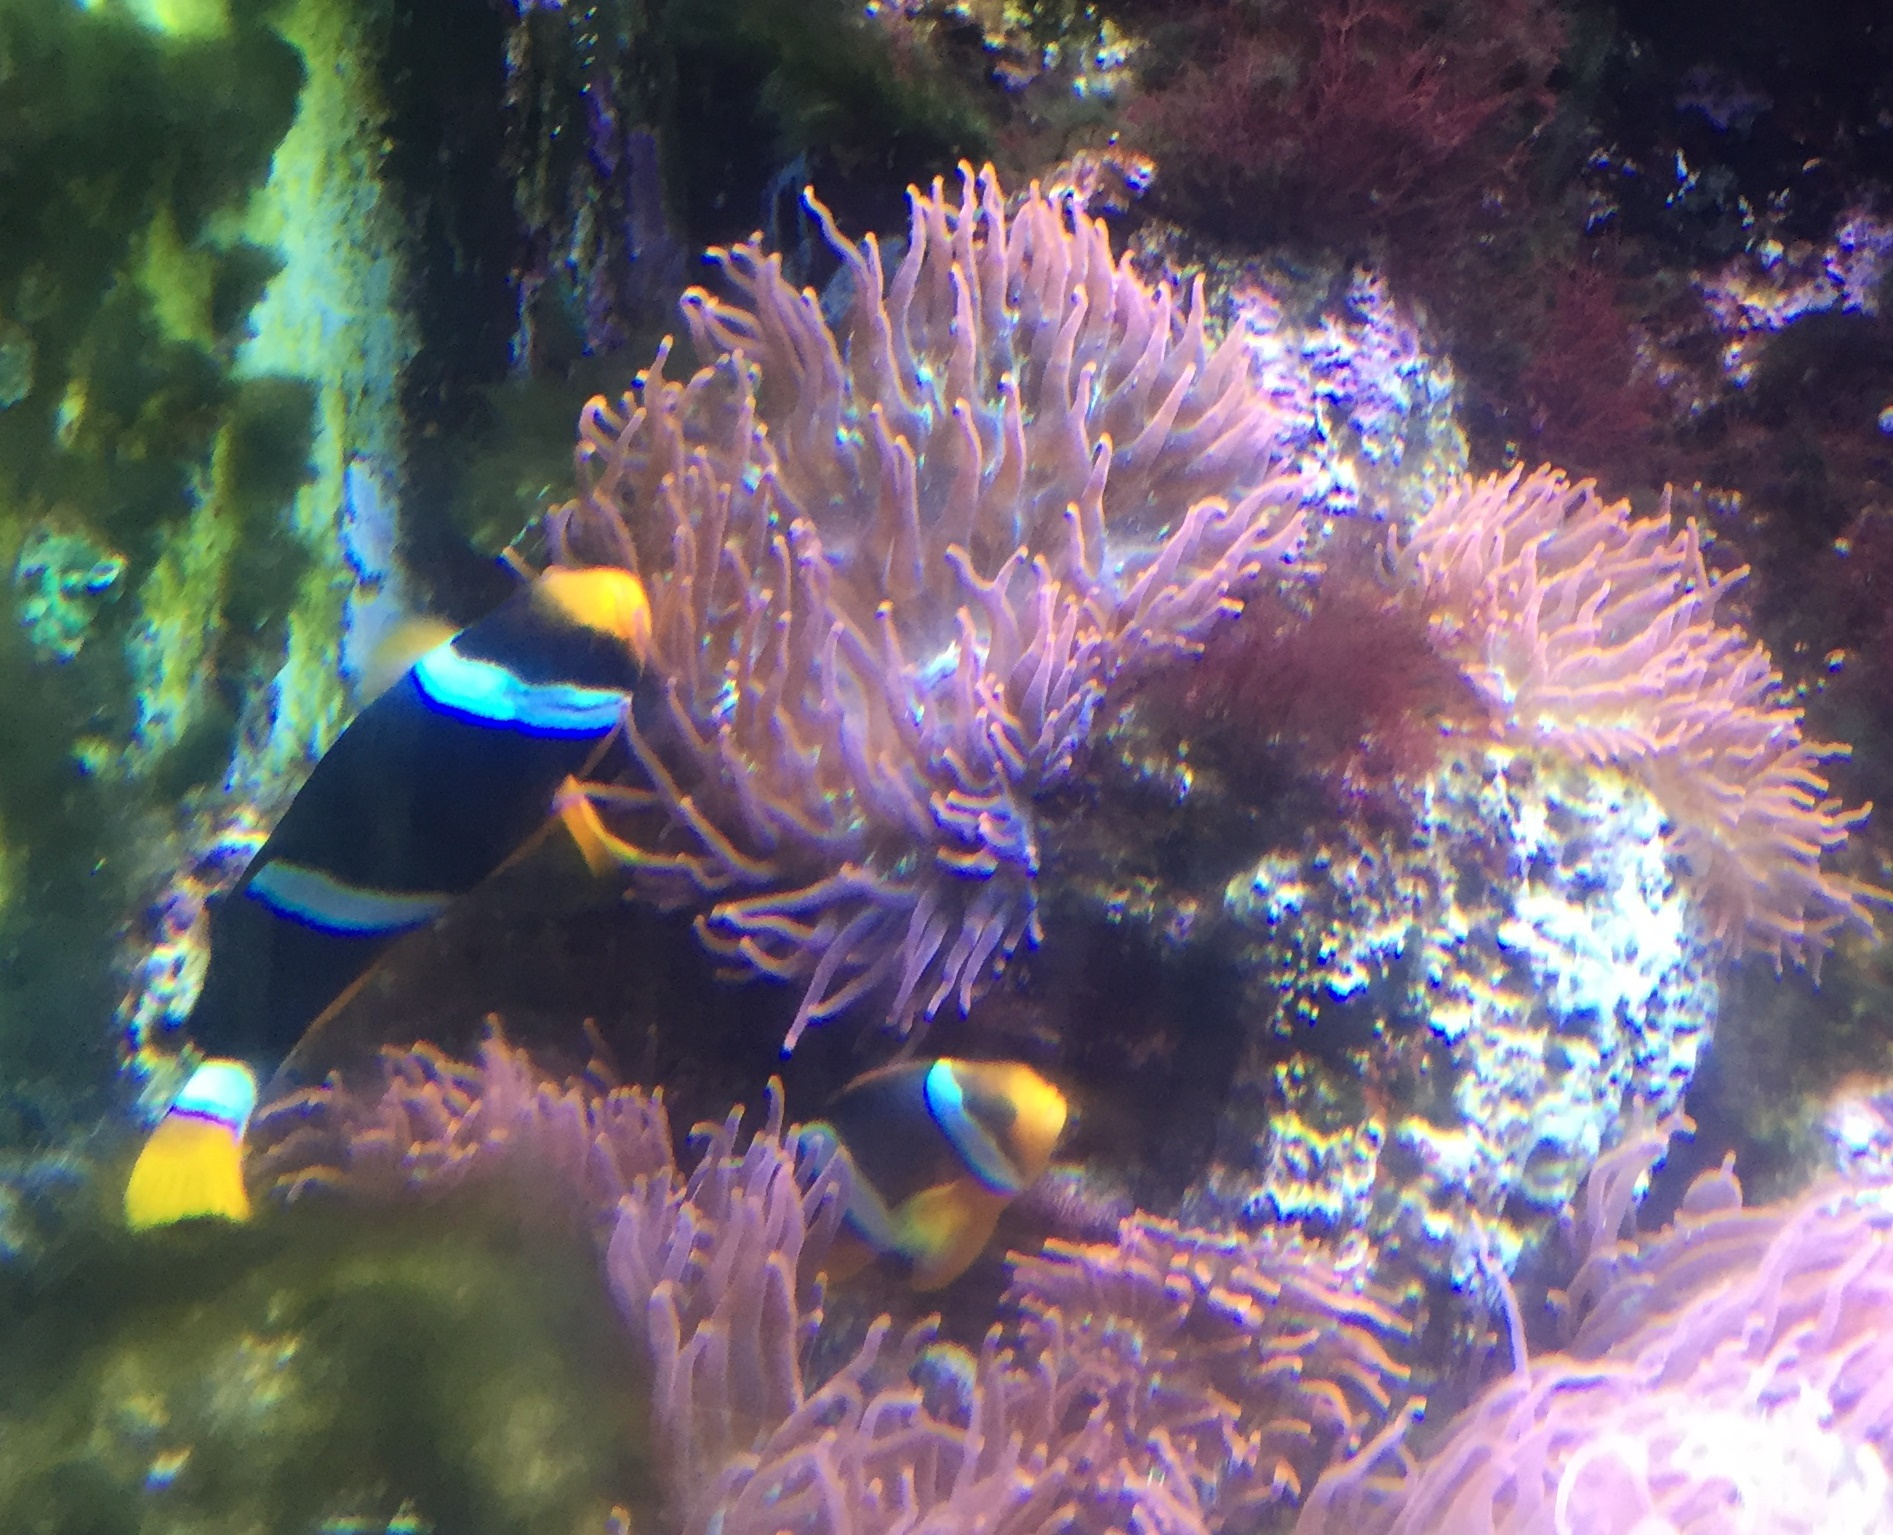 Two Colorful Clownfish In An Aquarium With Pink Plants